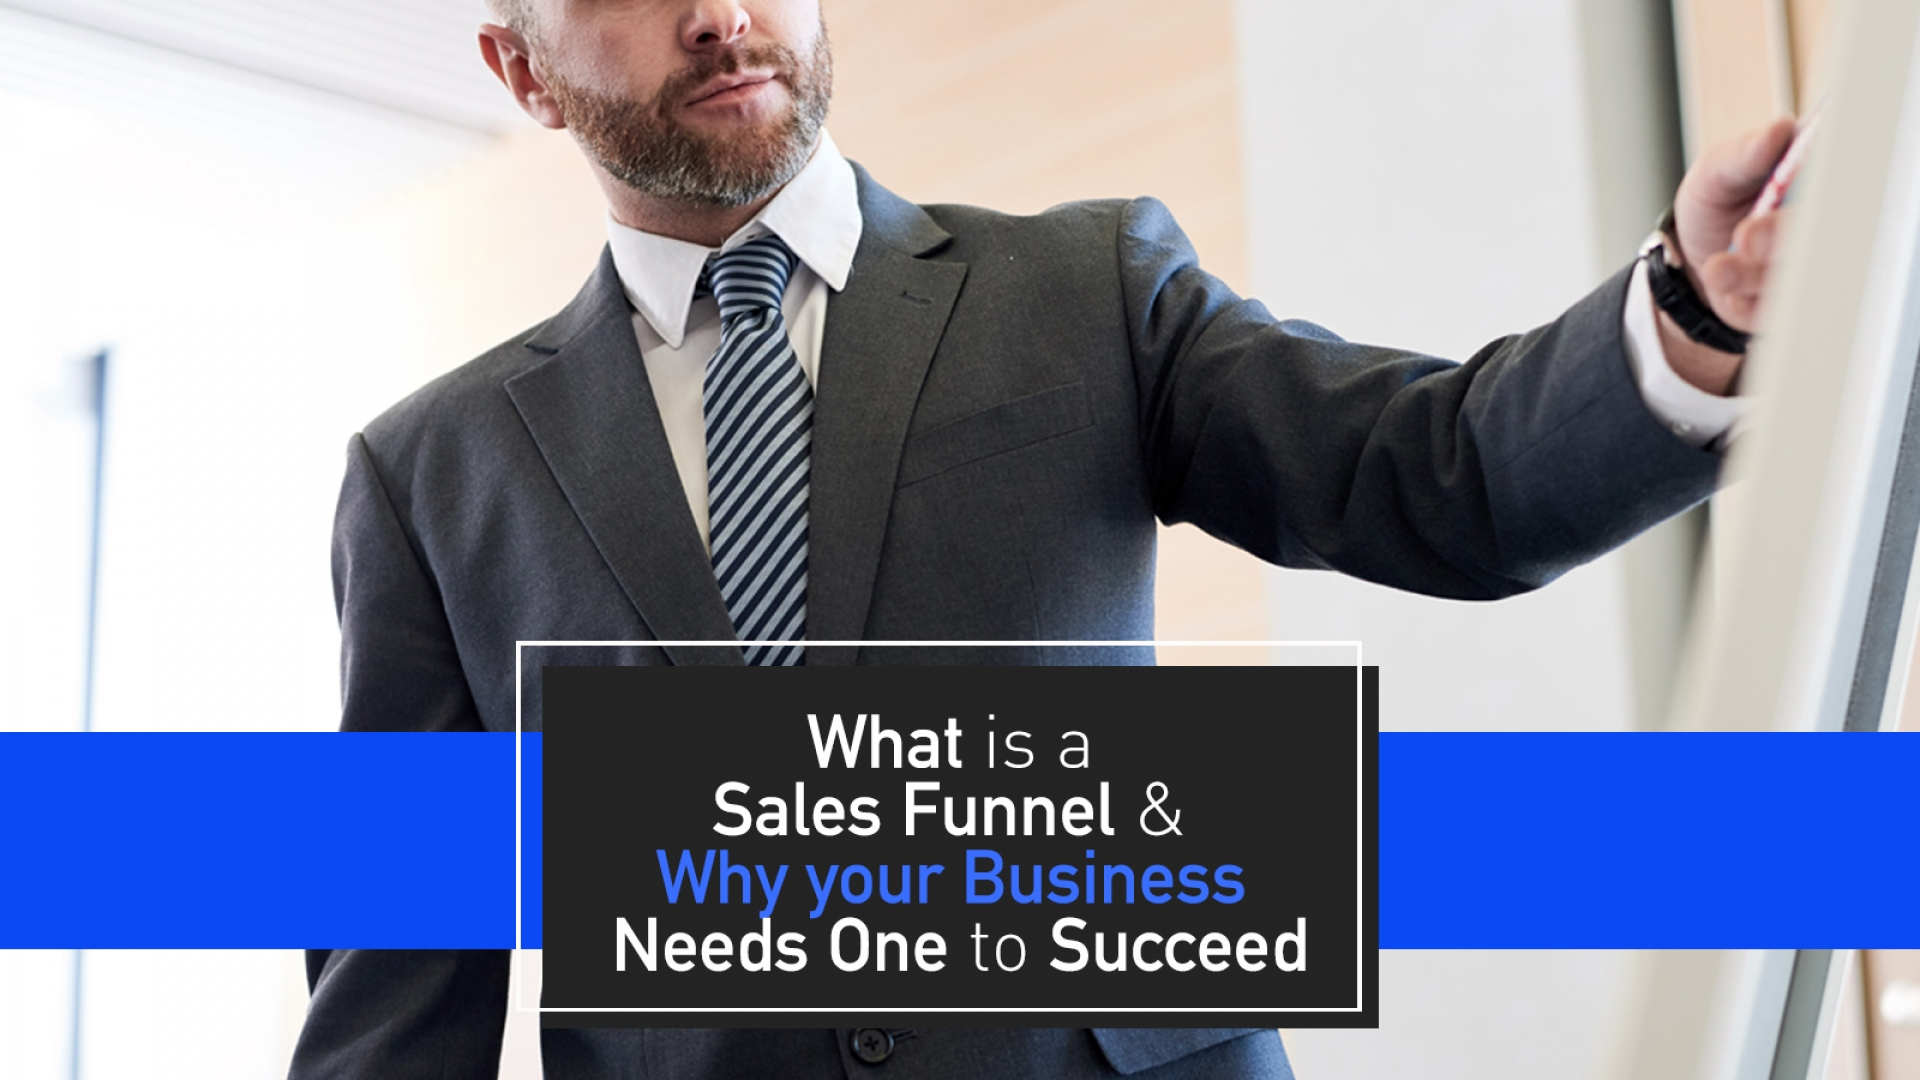 What is a Sales Funnel & Why Your Business Needs one to Succeed